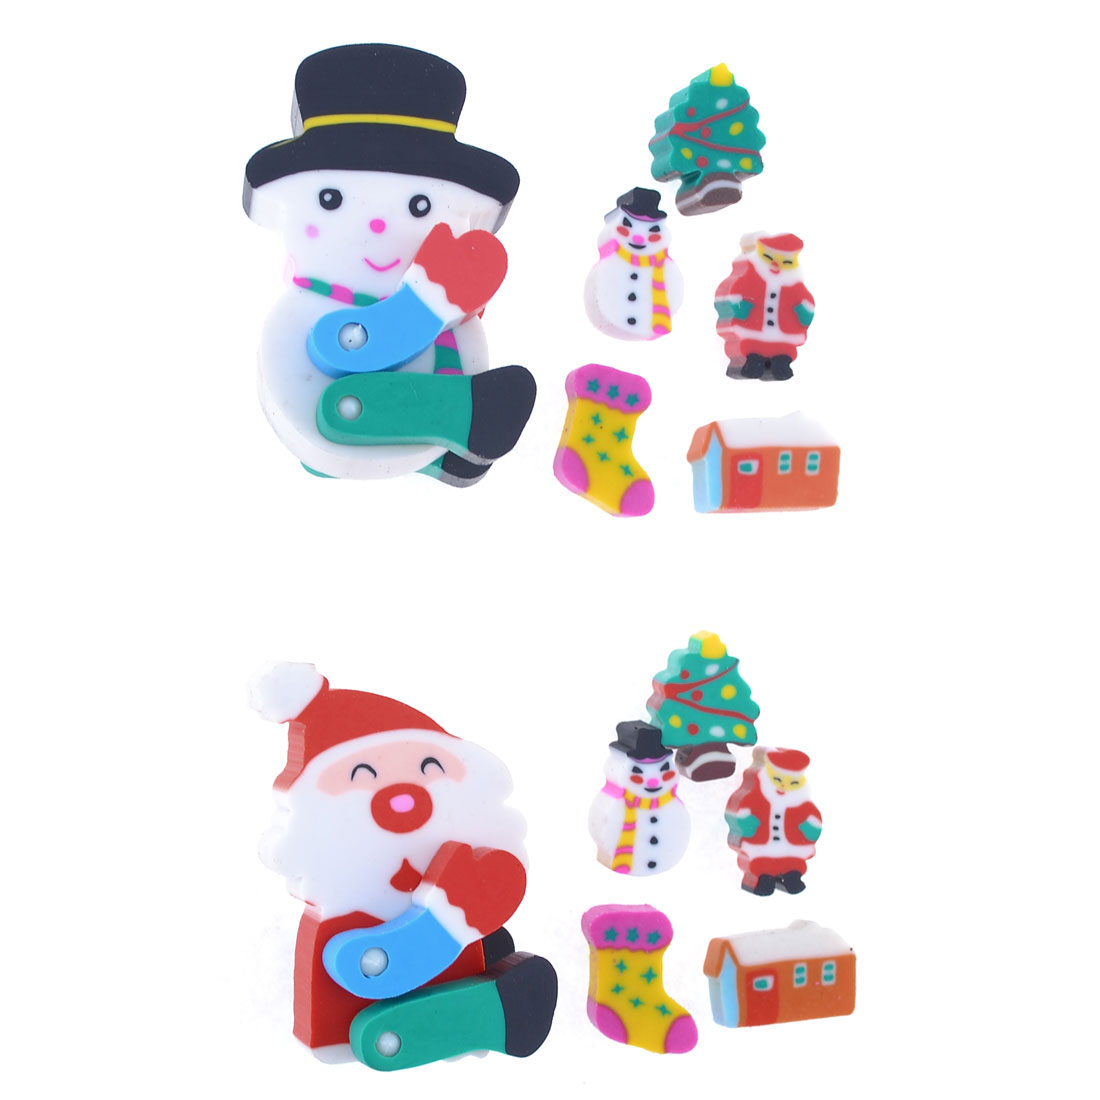 12 Pcs Christmas Tree Snowman Santa Design Rubber Erasers Set